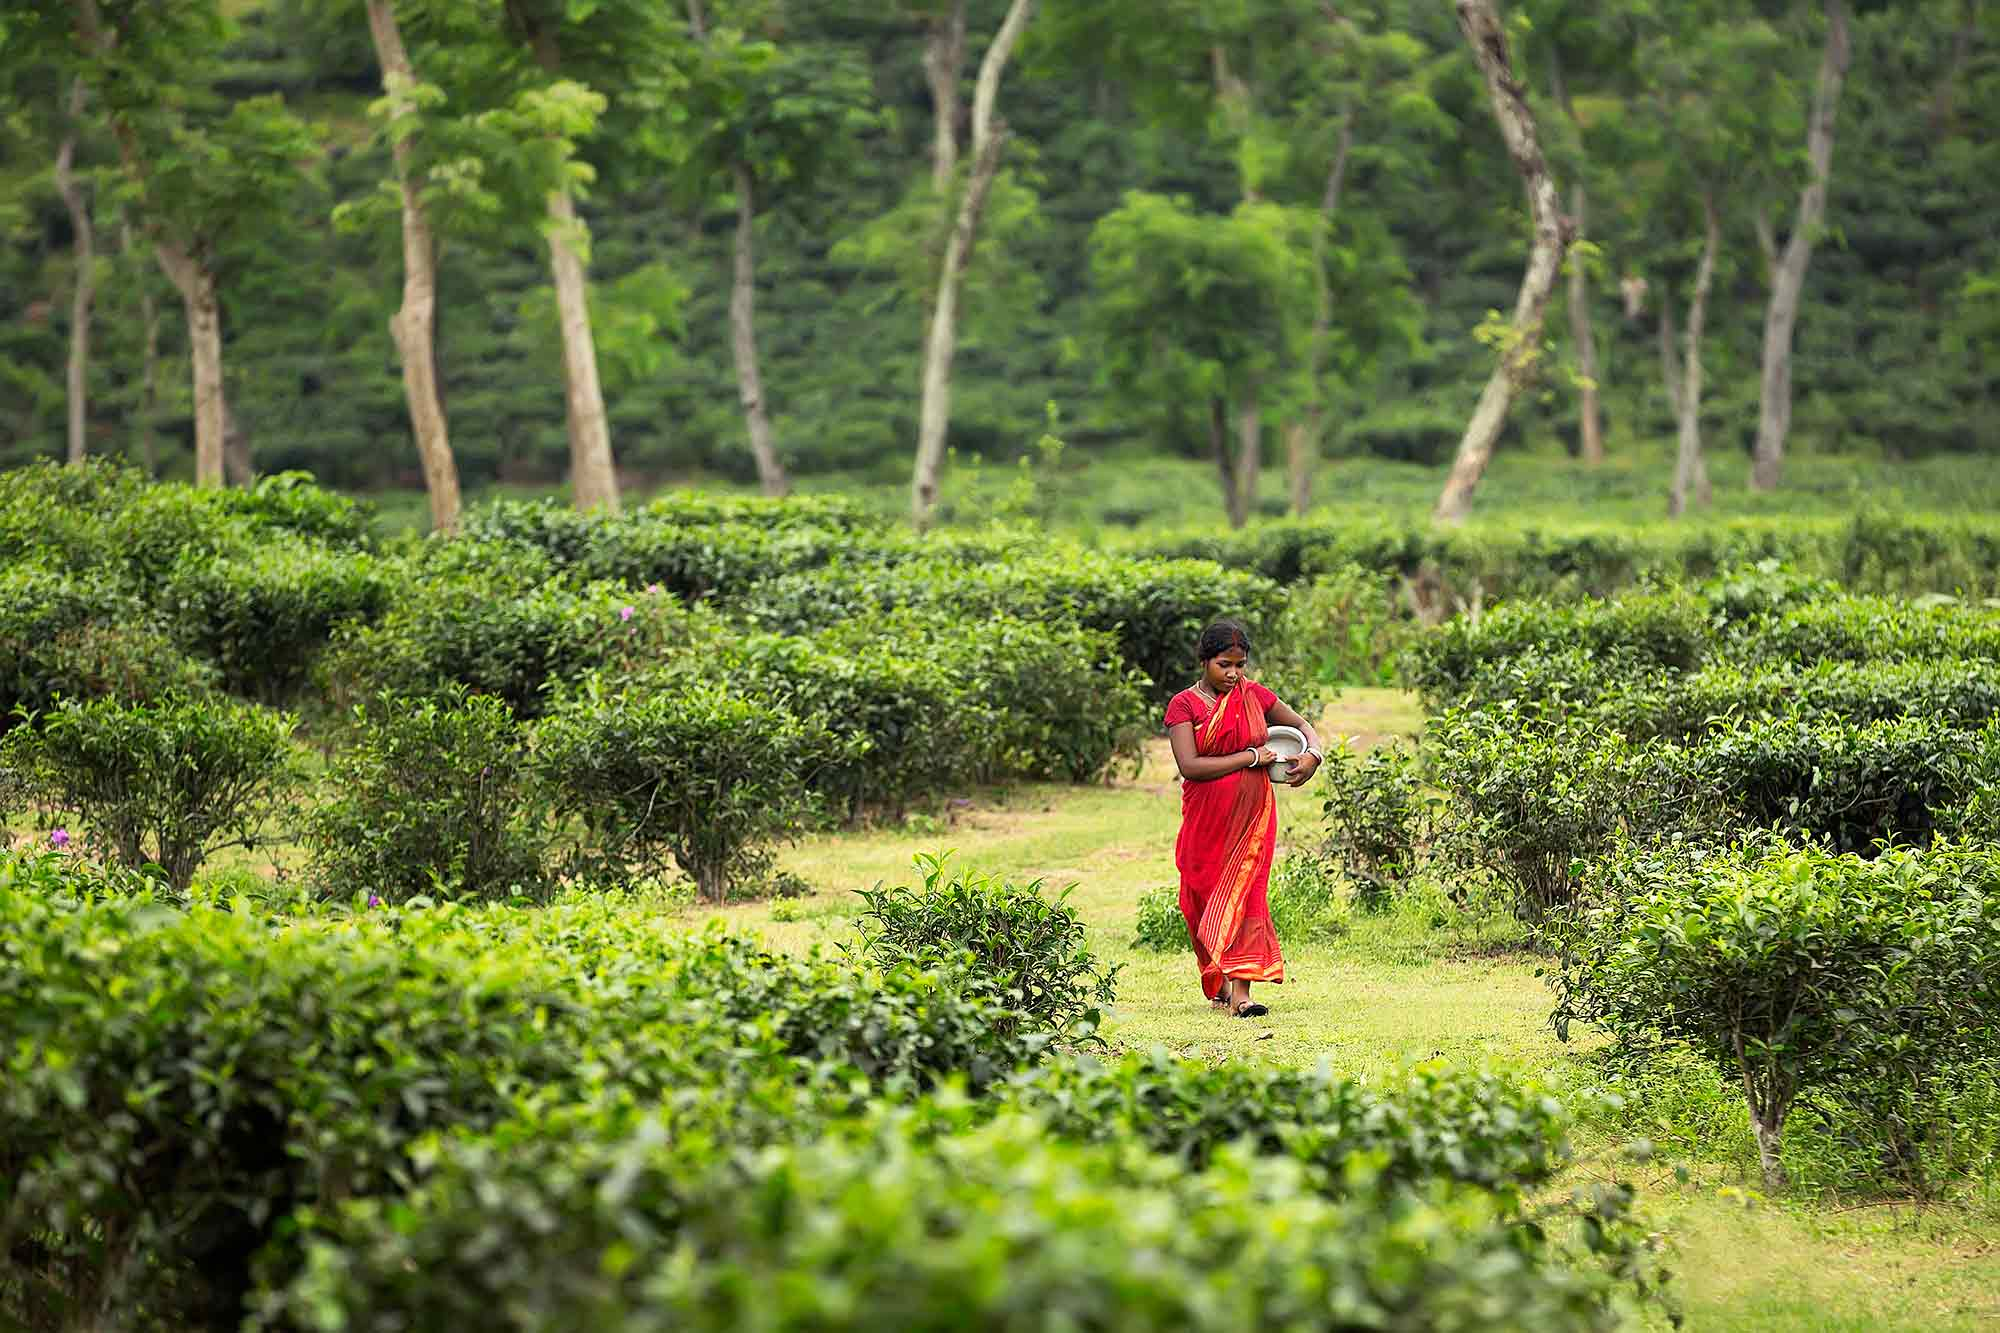 Walking through the tea plantations in Sylhet, Bangladesh. © Ulli Maier & Nisa Maier